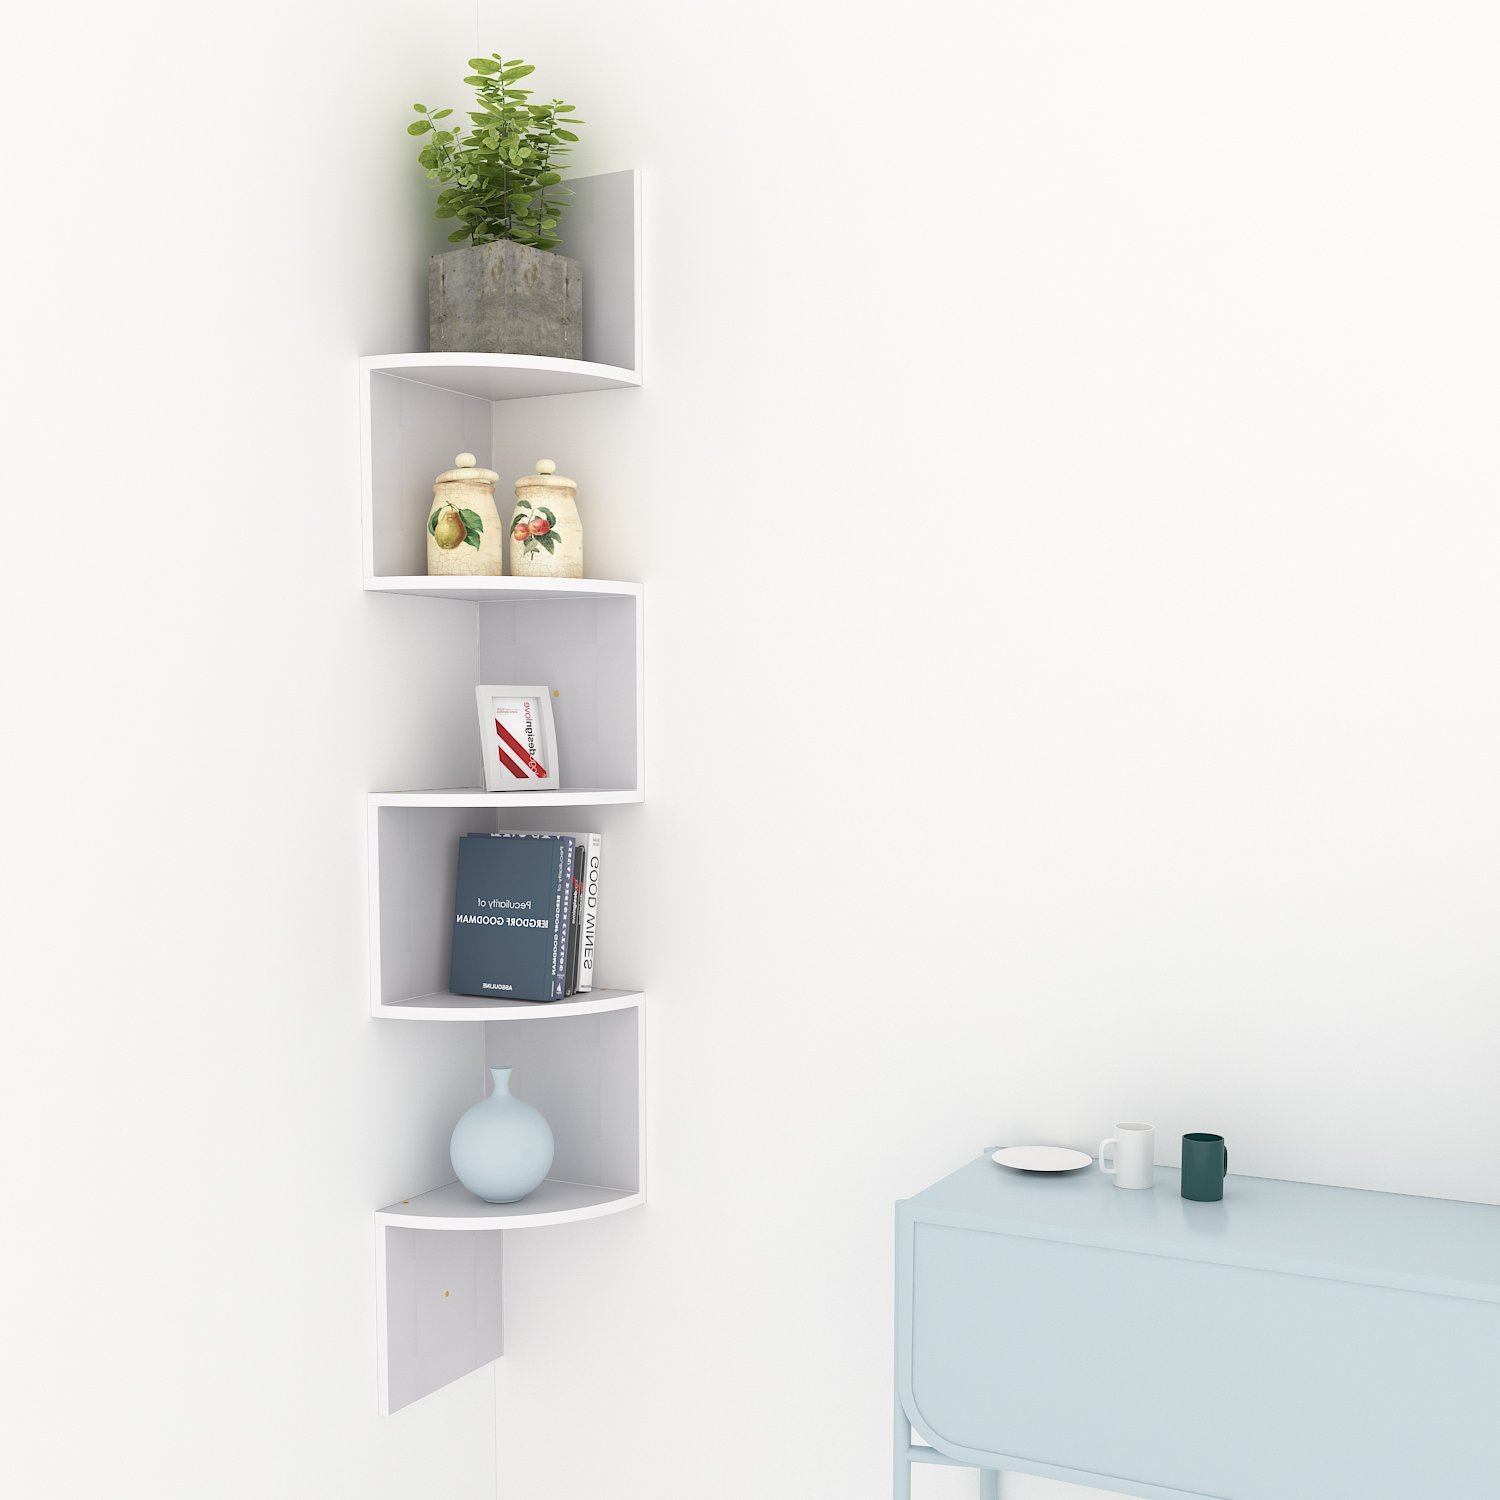 Homevol Corner Shelf, 5 Tier Wood Wall Mount Corner Shelves/Bookshelf/Bookcase,Light Grey